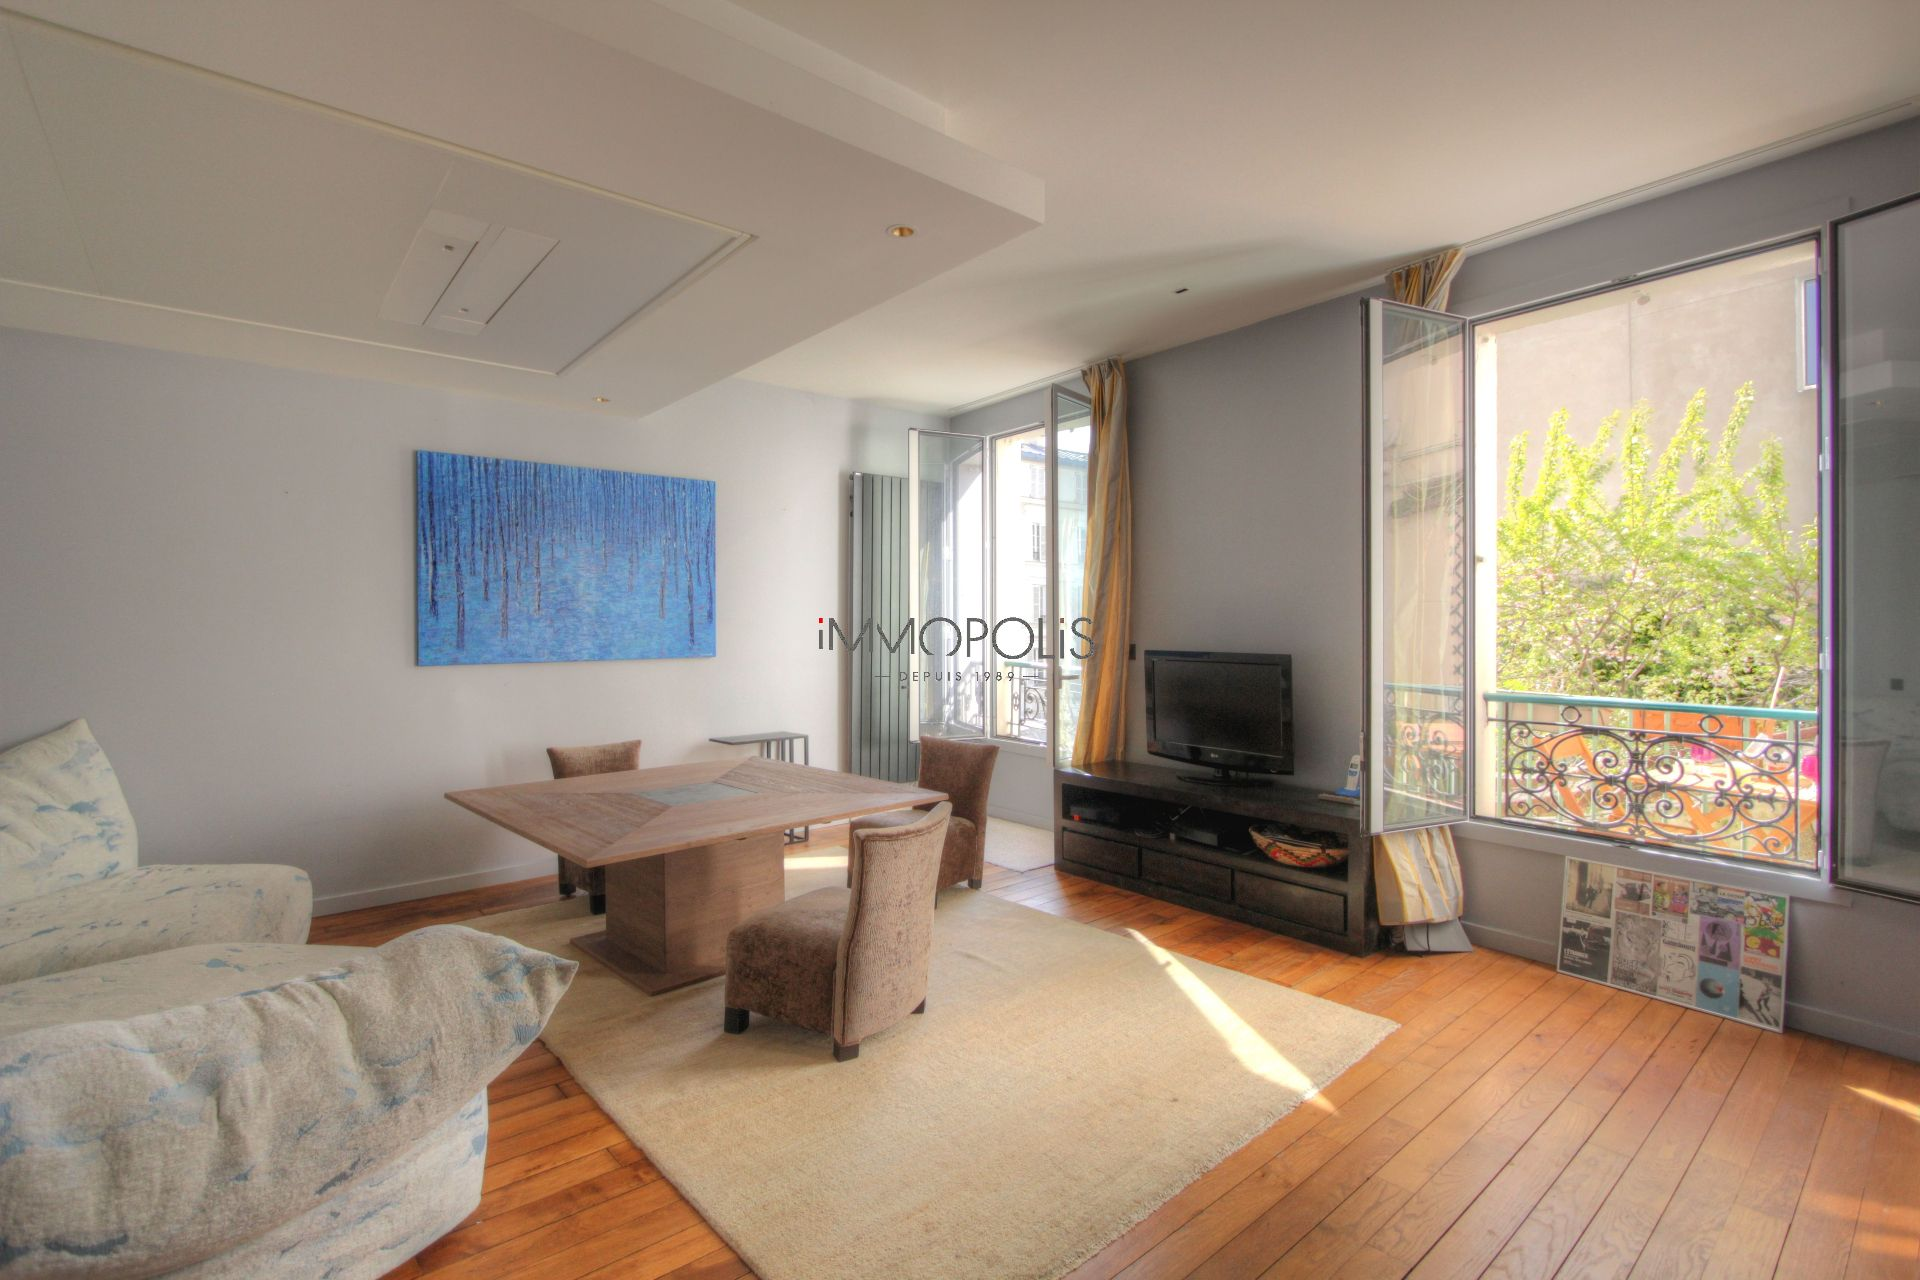 Exceptional in Montmartre (rue Gabrielle): refurbished open space, sumptuous appointments, with balcony and open view! 1